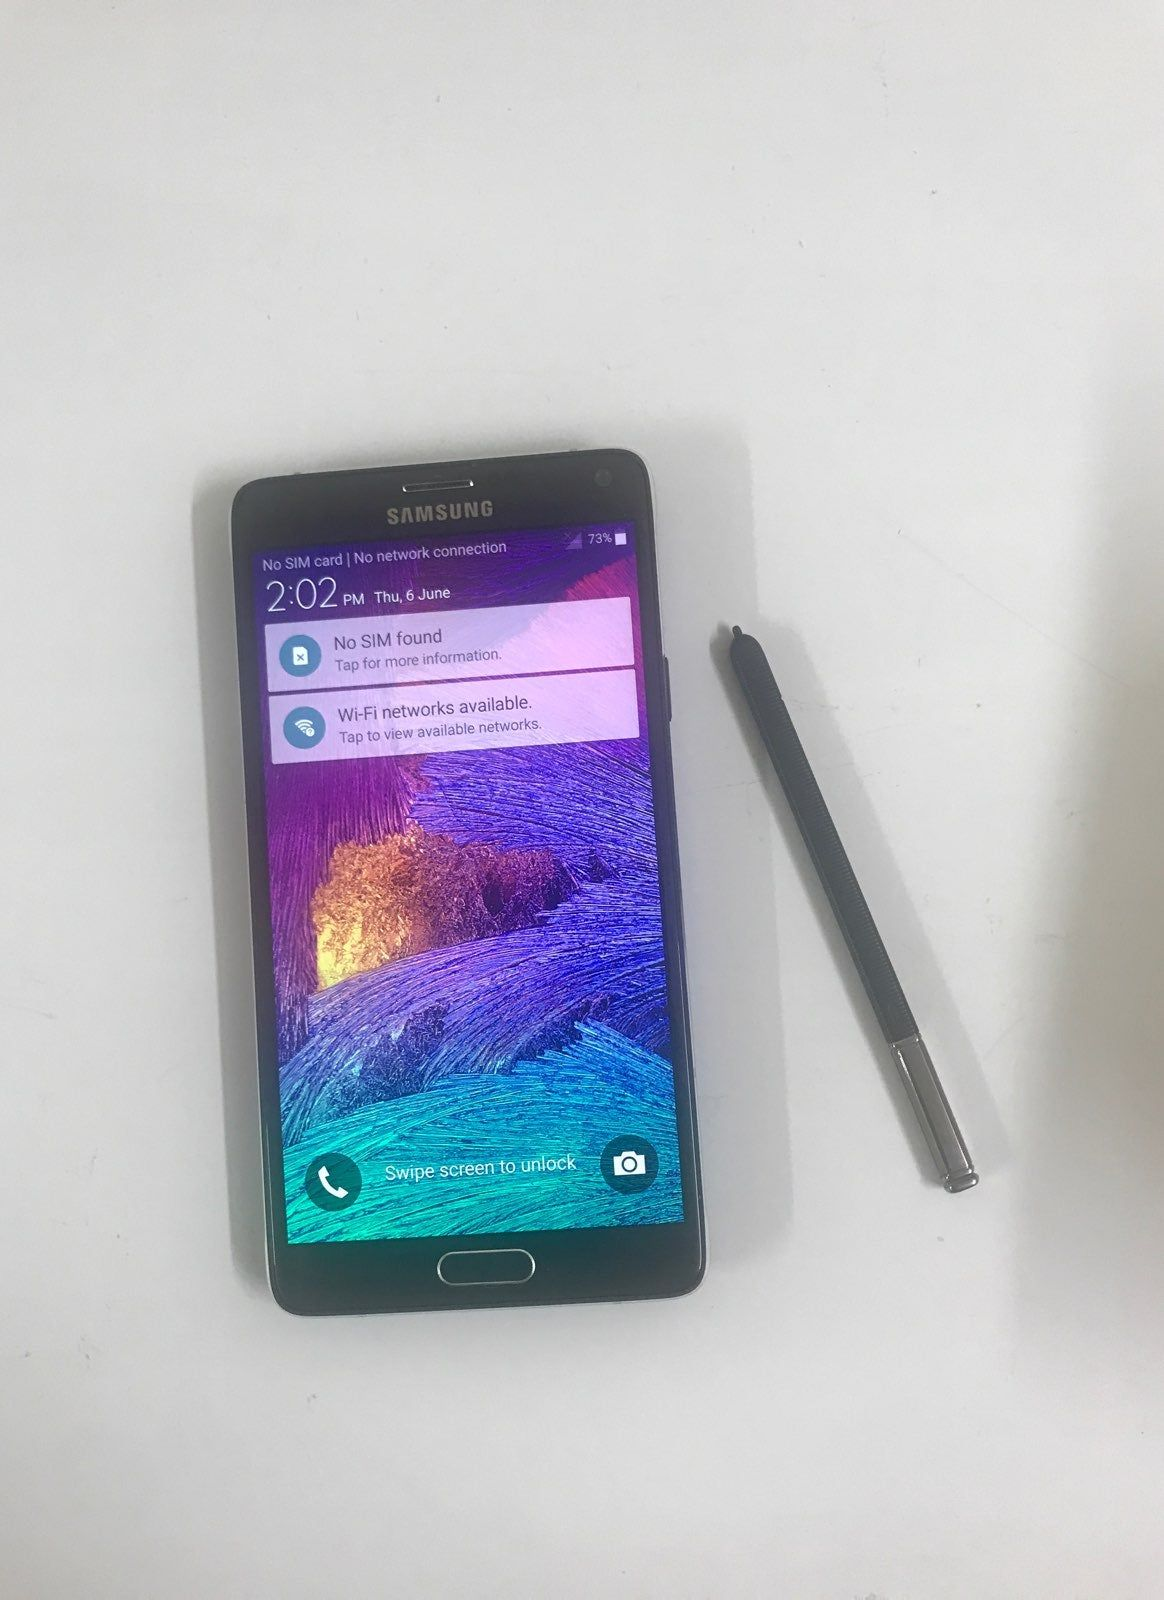 Samsung Note4 Unlocked N910v Super Excellent Condition Its Gsm Unlocked This Device For All Gsm Networks Like At T T Mobile Metro Pcs Galaxy Note 4 Samsung Samsung Galaxy